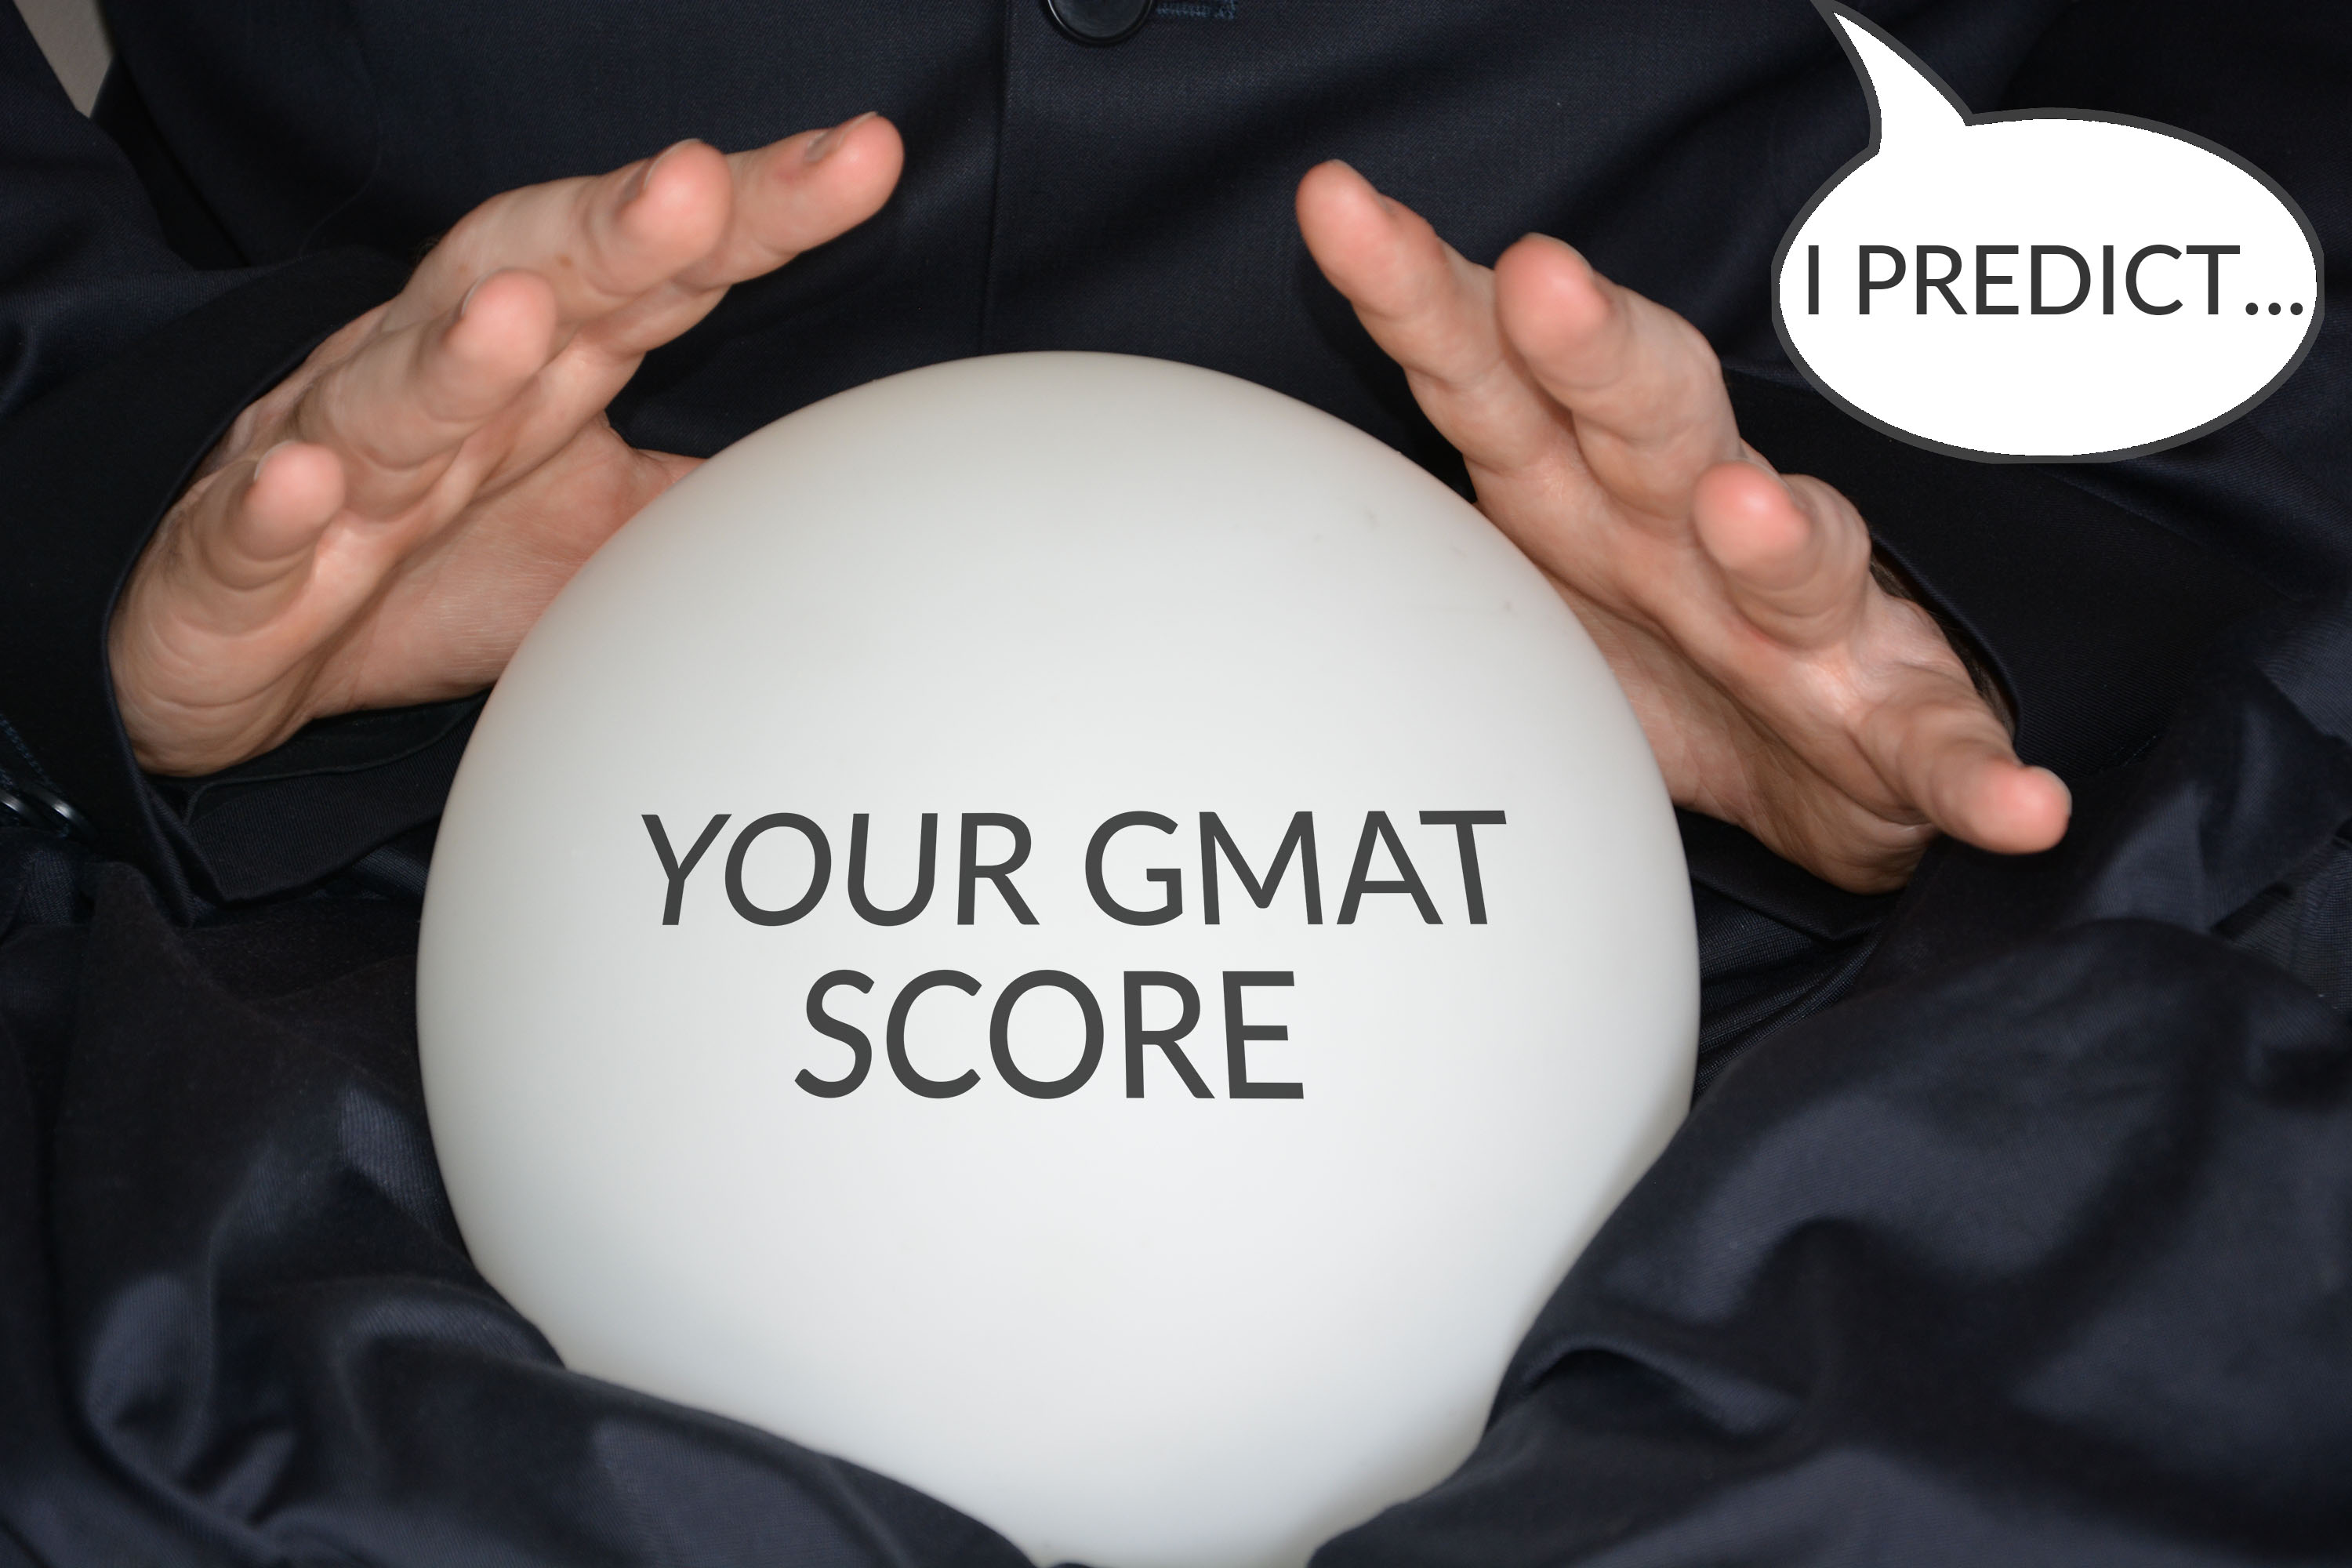 Do GMAT Score Estimators Work? How To Predict Your GMAT Score?